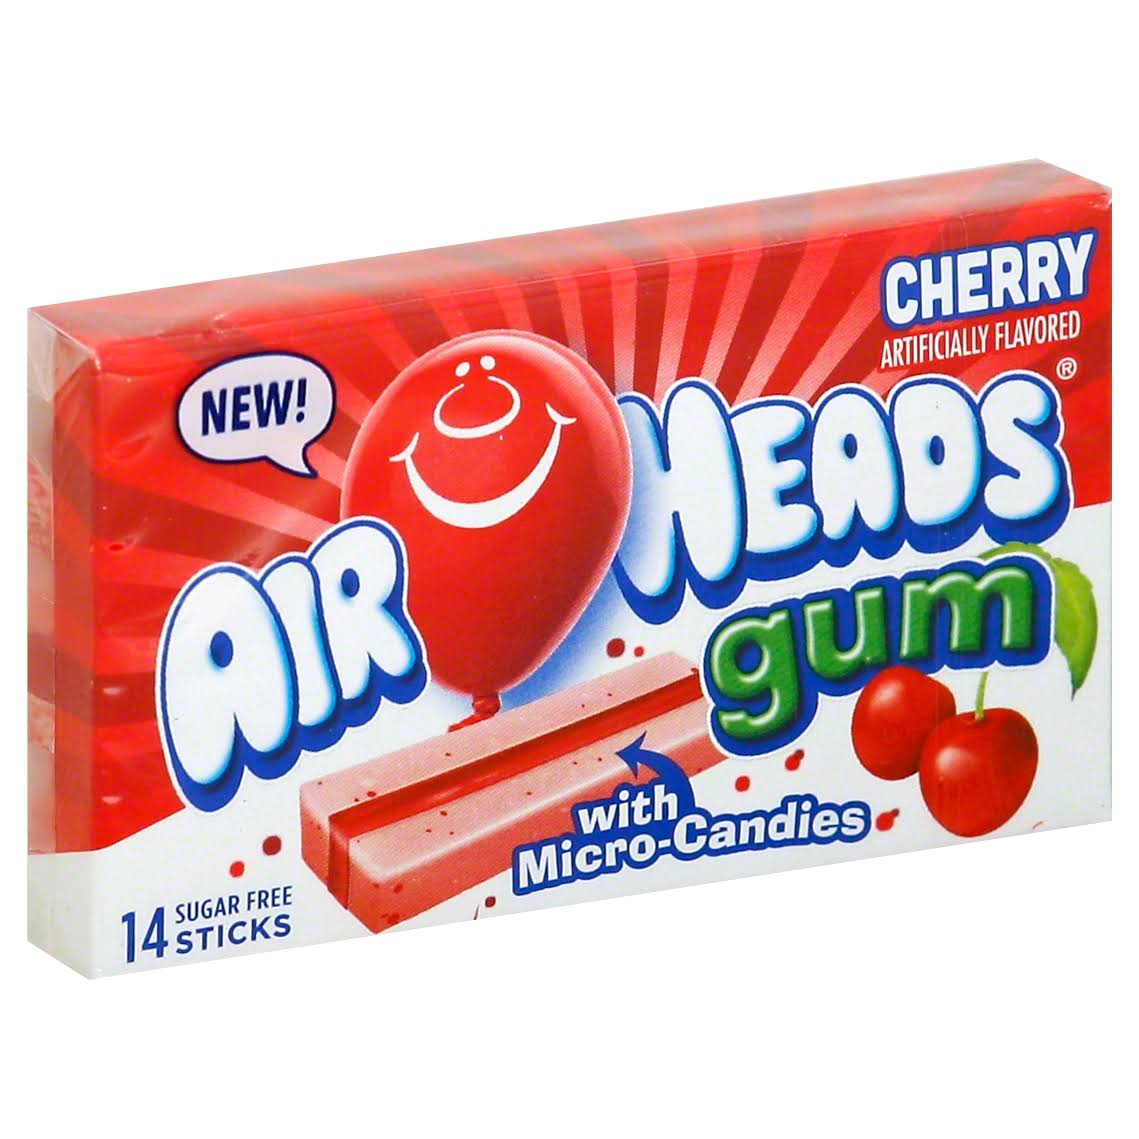 Airheads Gum Sugar-Free Sticks - Cherry, 14pcs